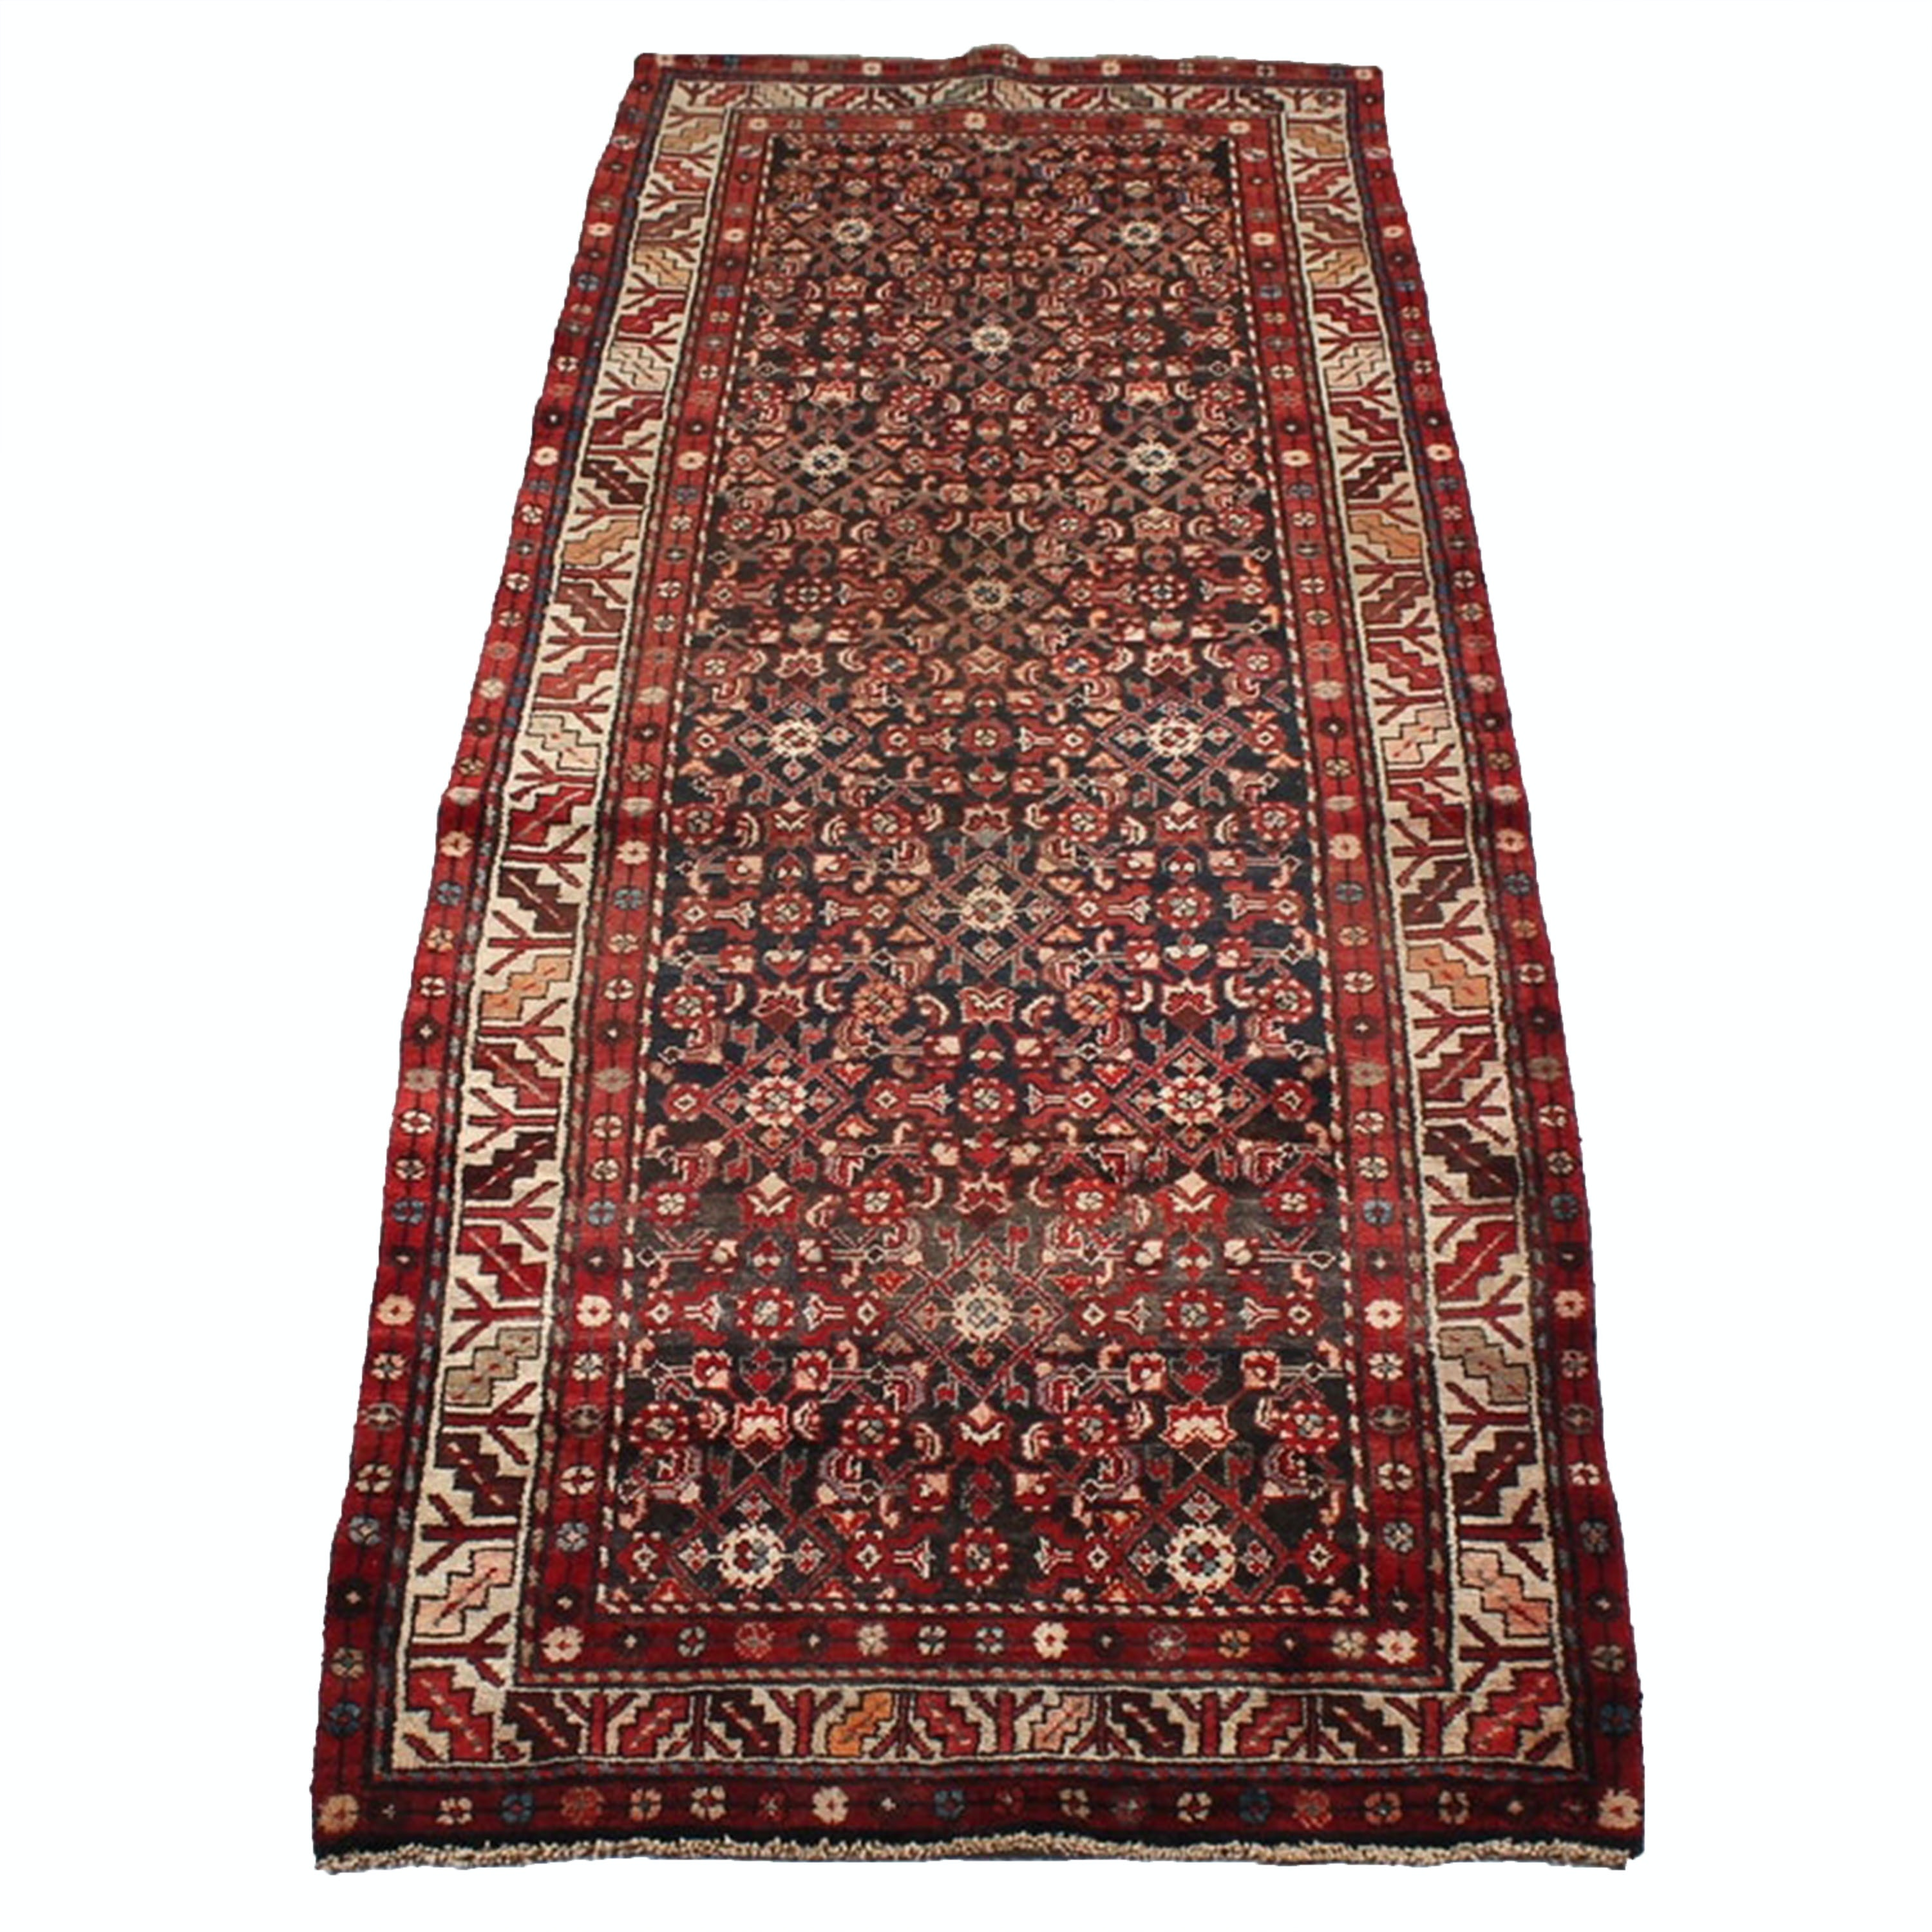 Vintage Hand-Knotted Southern Caucasian Wool Runner